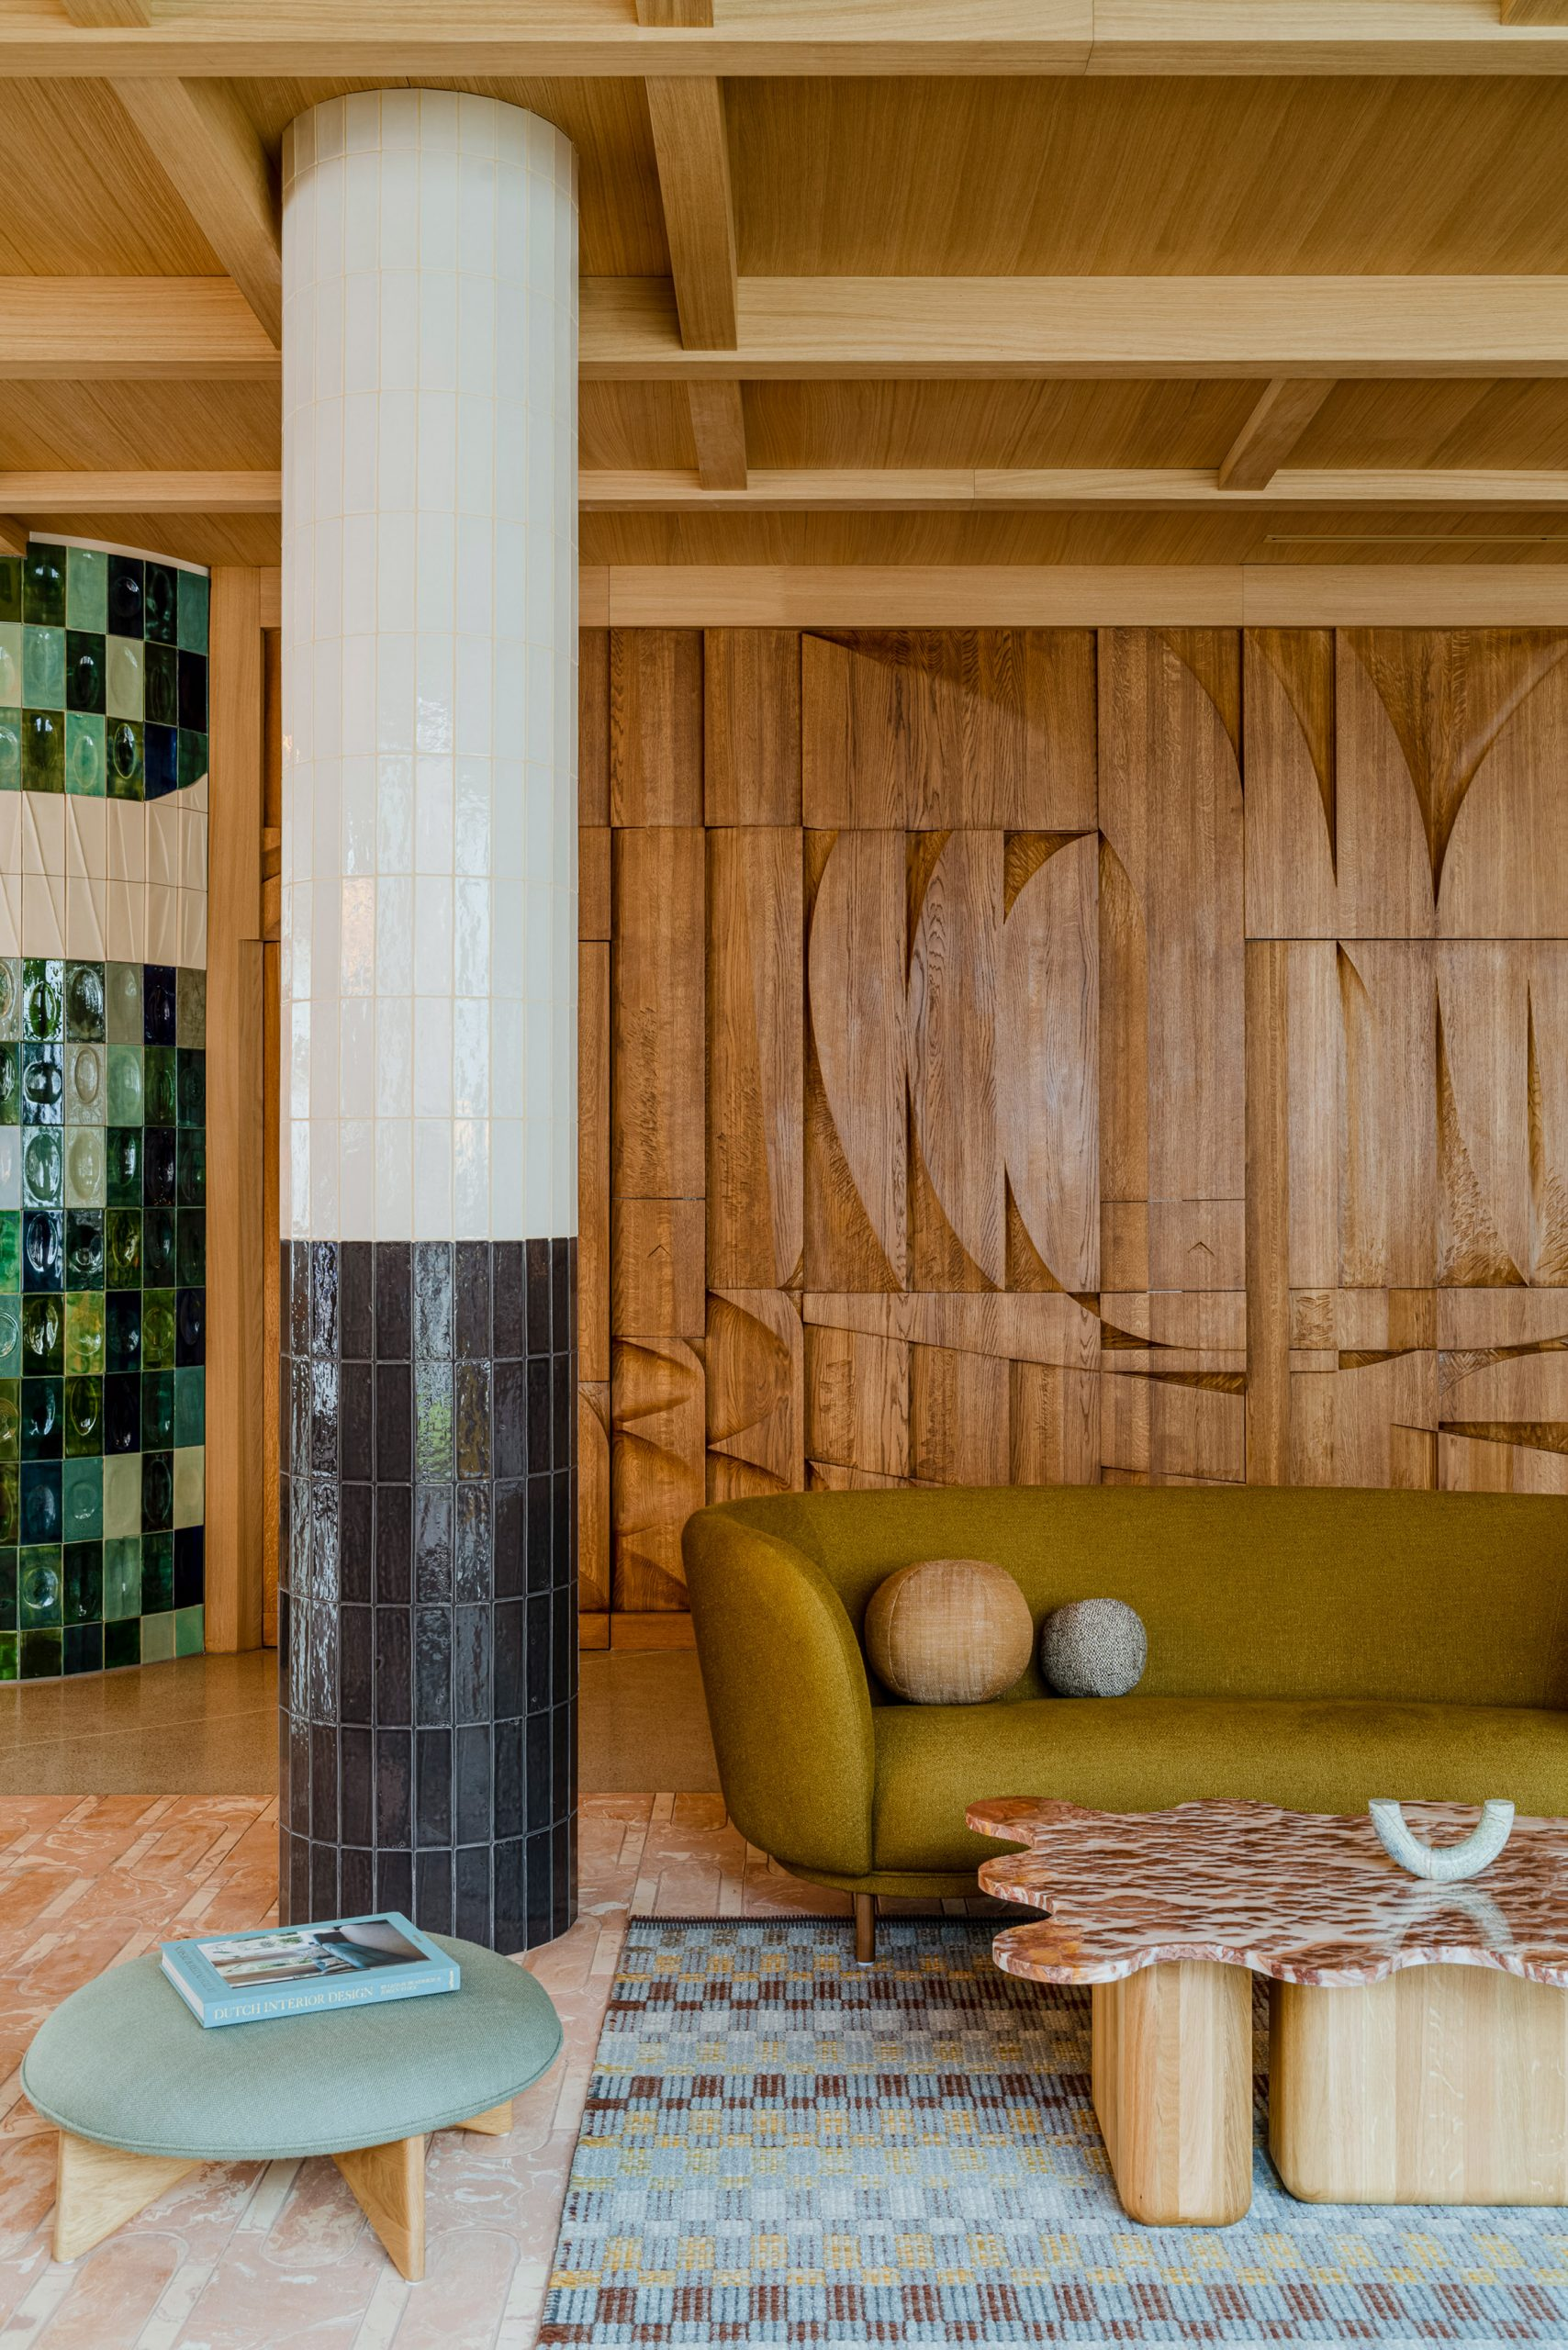 Tiled pillar and bar-relief wall in hotel interior by Studio Paradowski